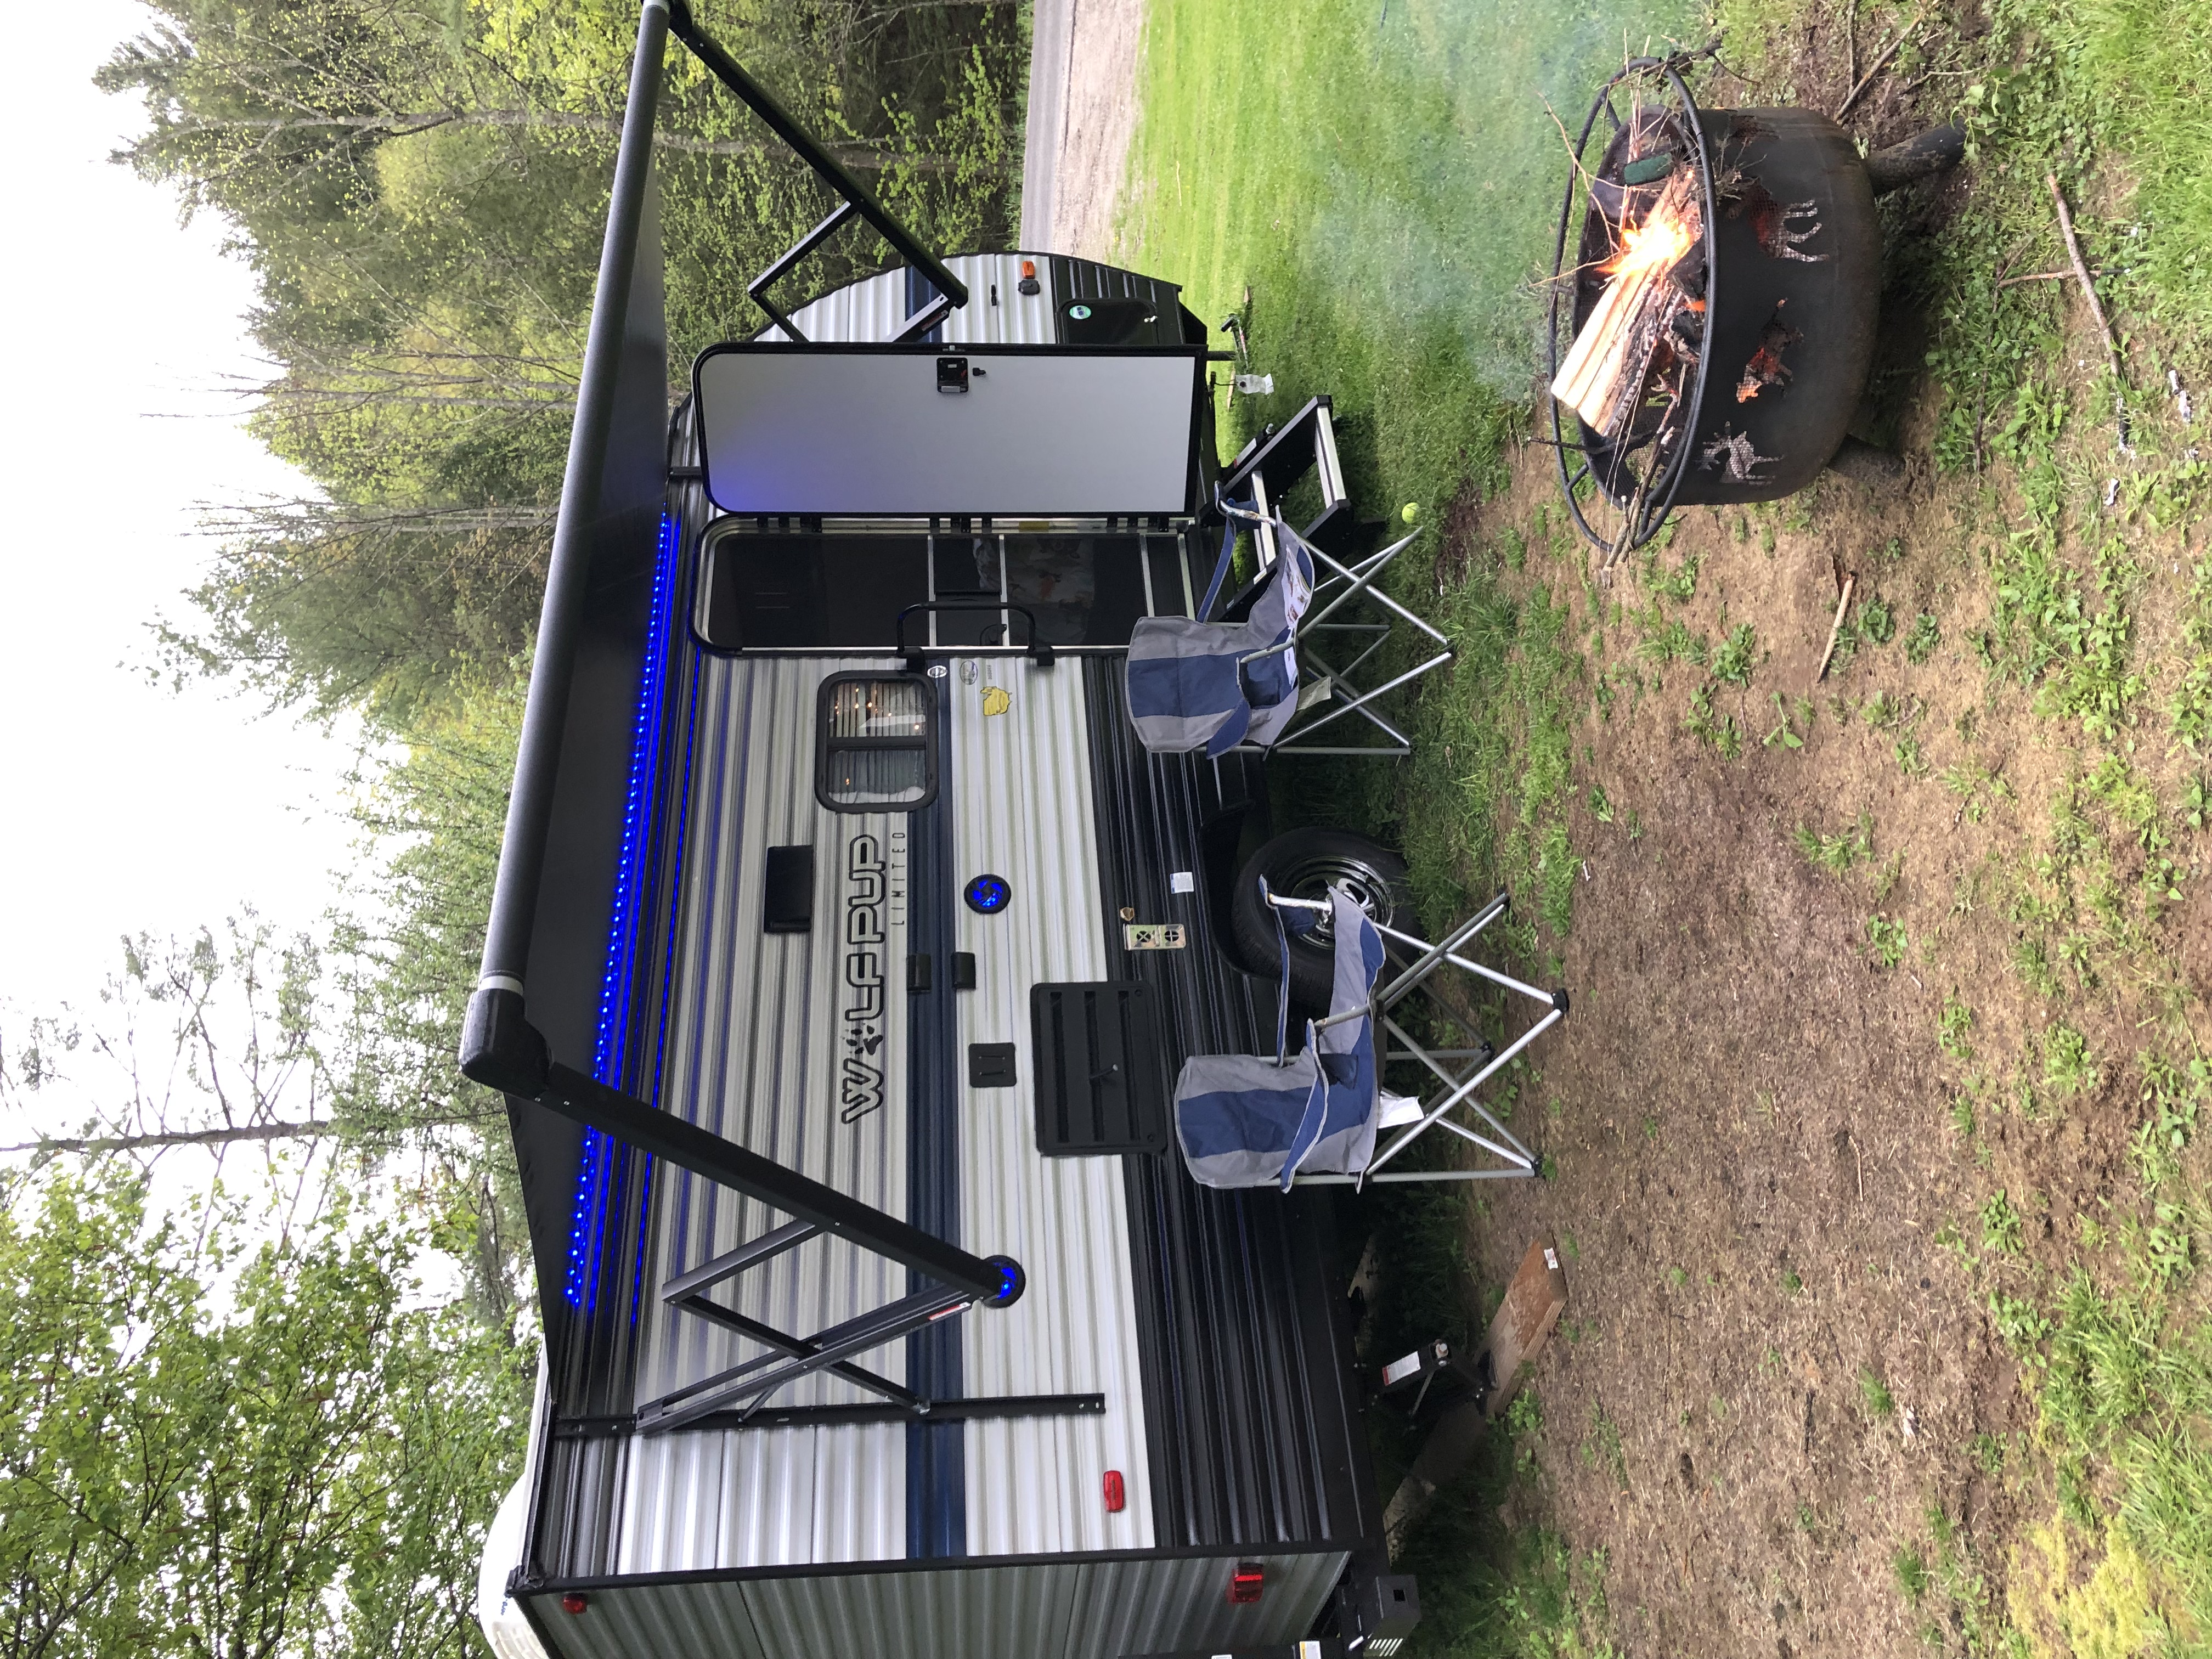 Power awning and outdoor speakers make this a great place to hang out in all kinds of weather. Forest River Cherokee Wolf Pup 2019